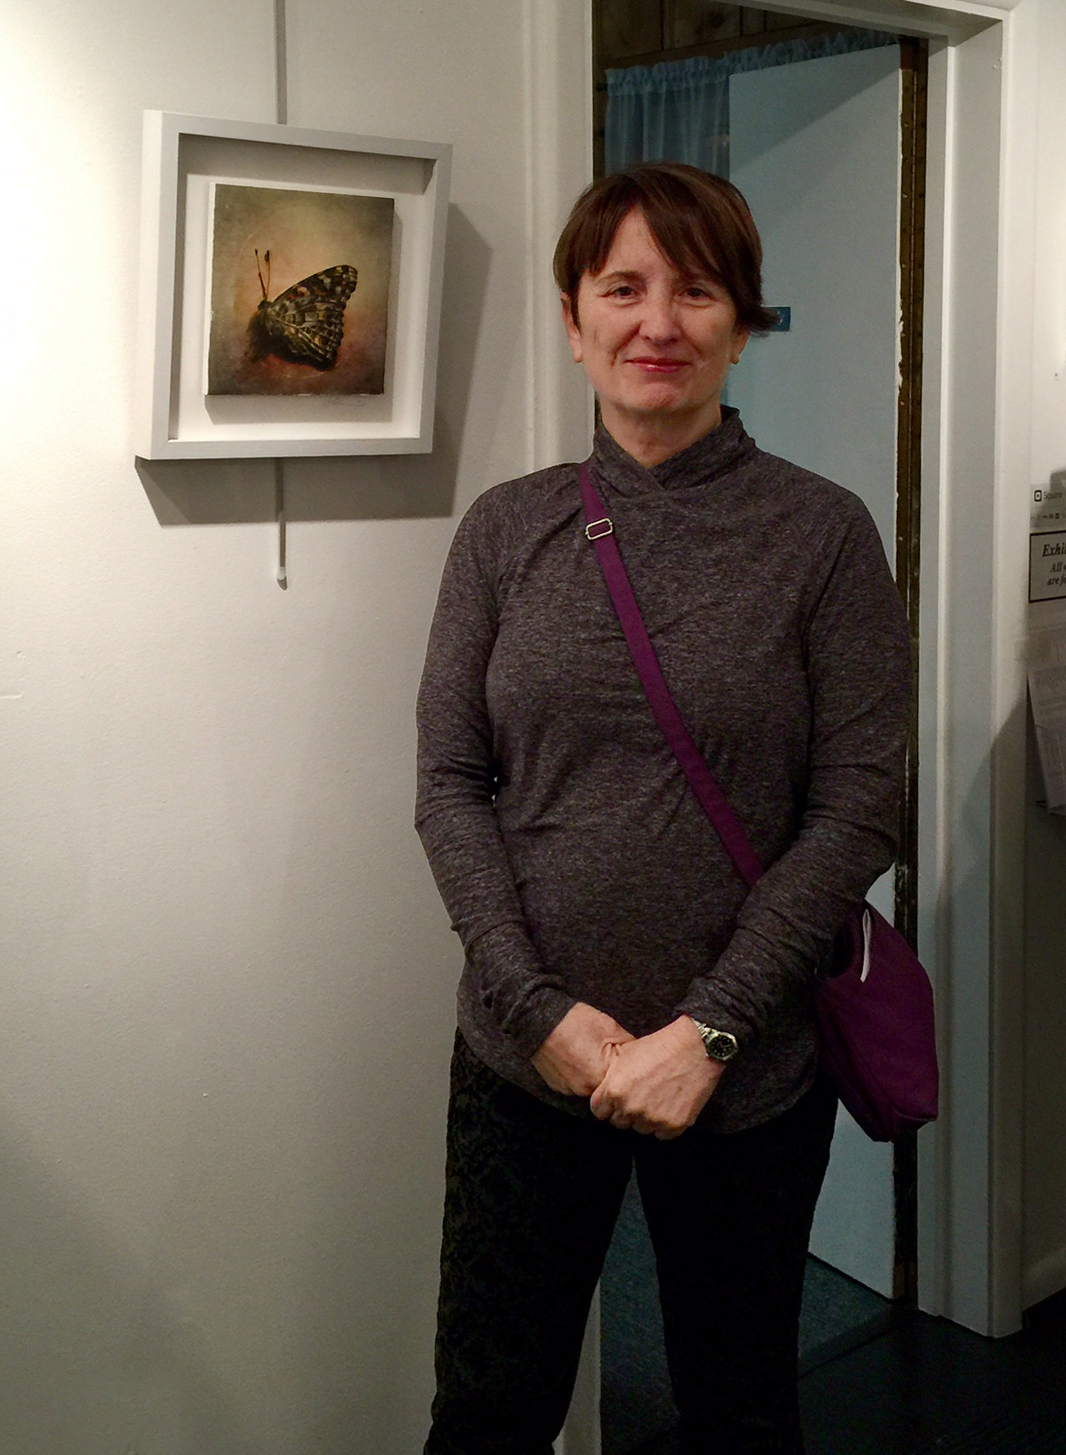 Sandra Carrion with her work, Butterfly